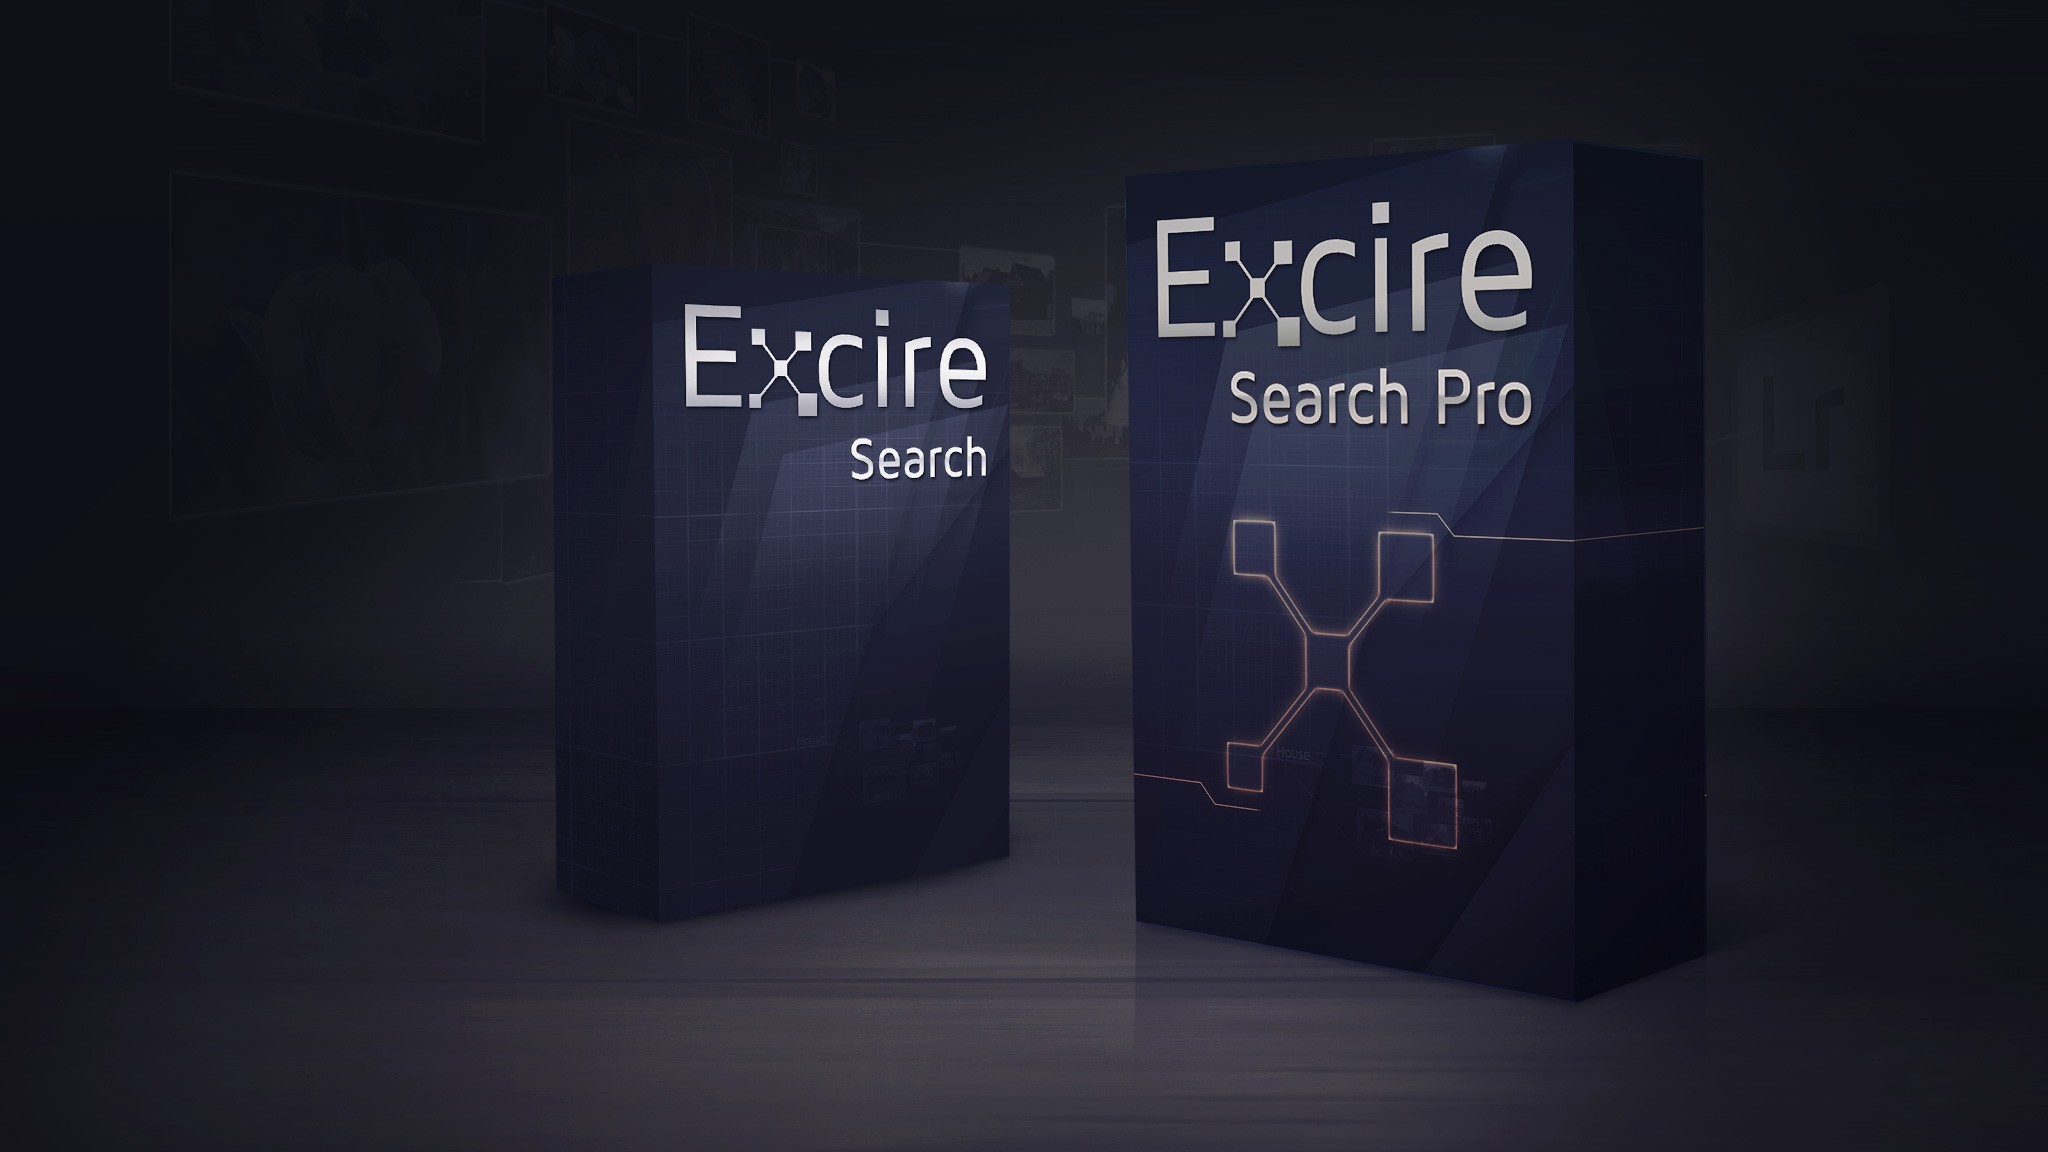 Excire Search Pro Black Friday special offer